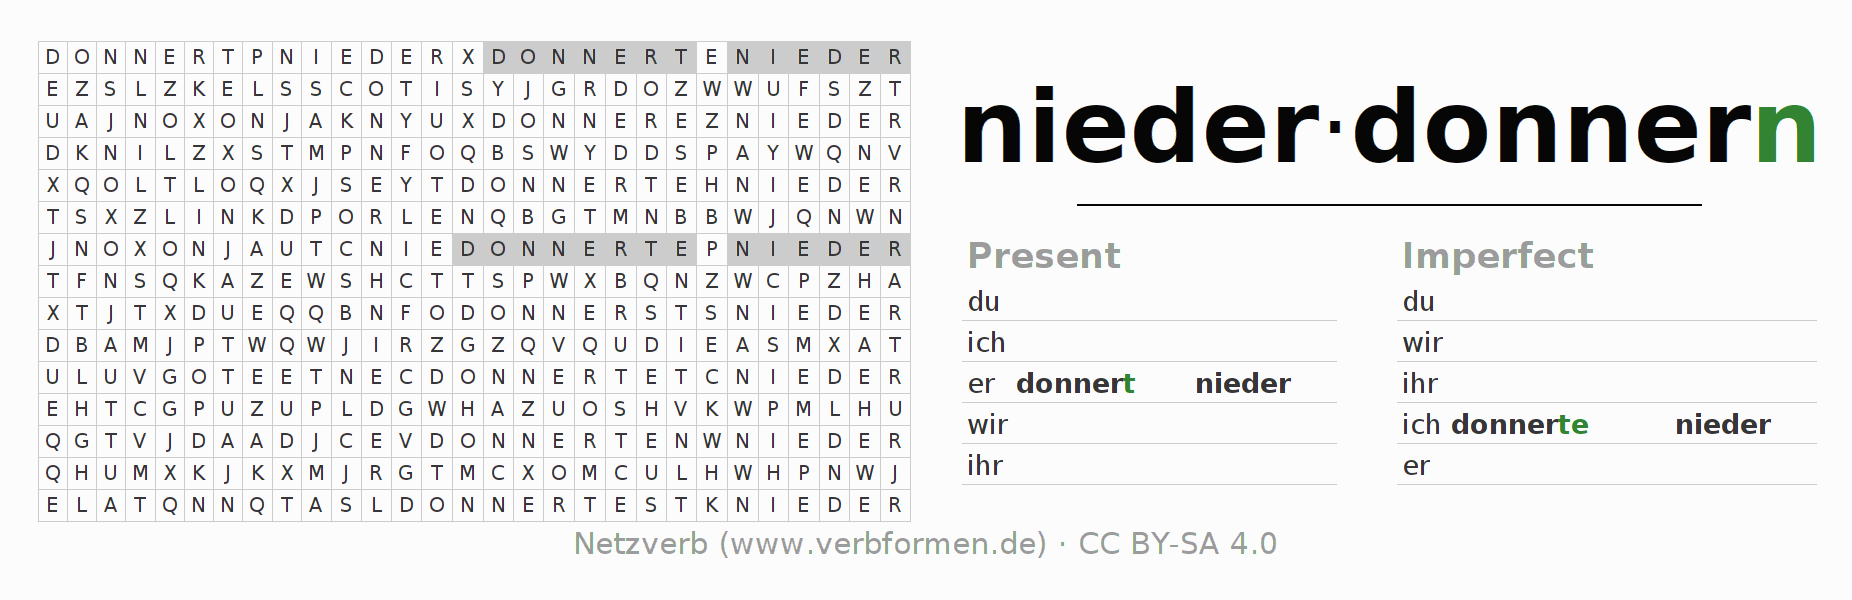 Word search puzzle for the conjugation of the verb niederdonnern